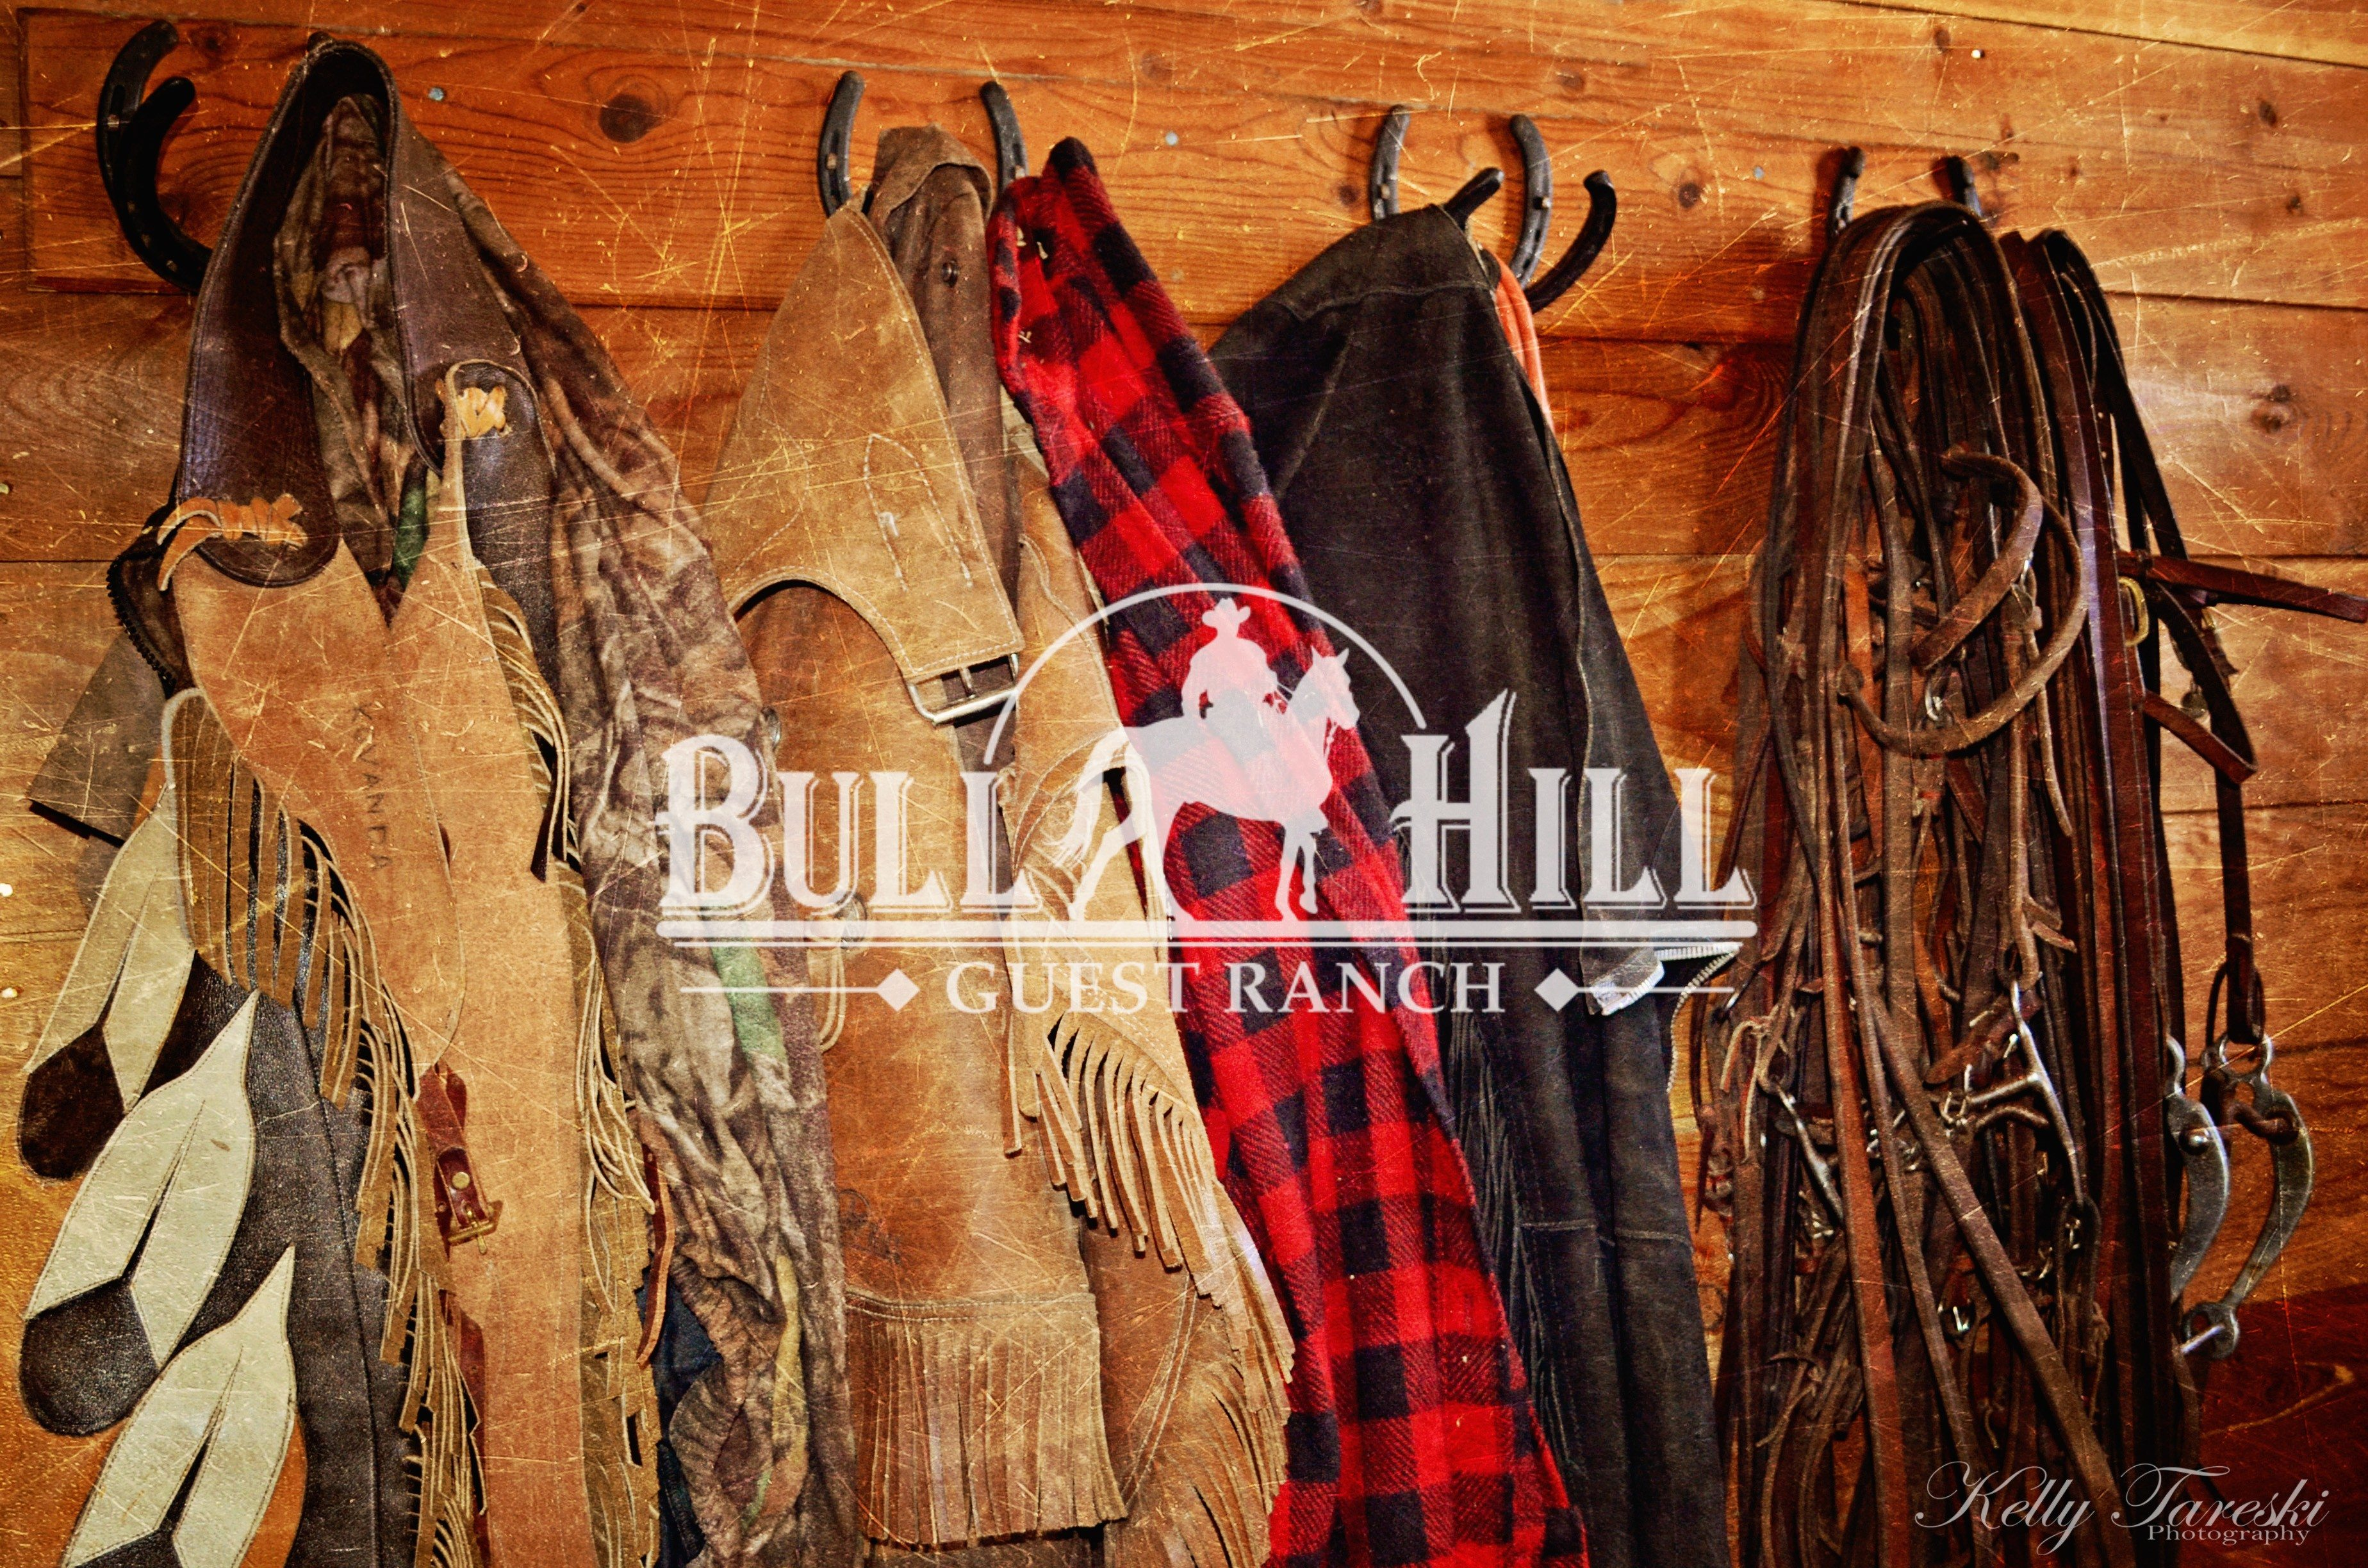 Bull Hill Guest Ranch